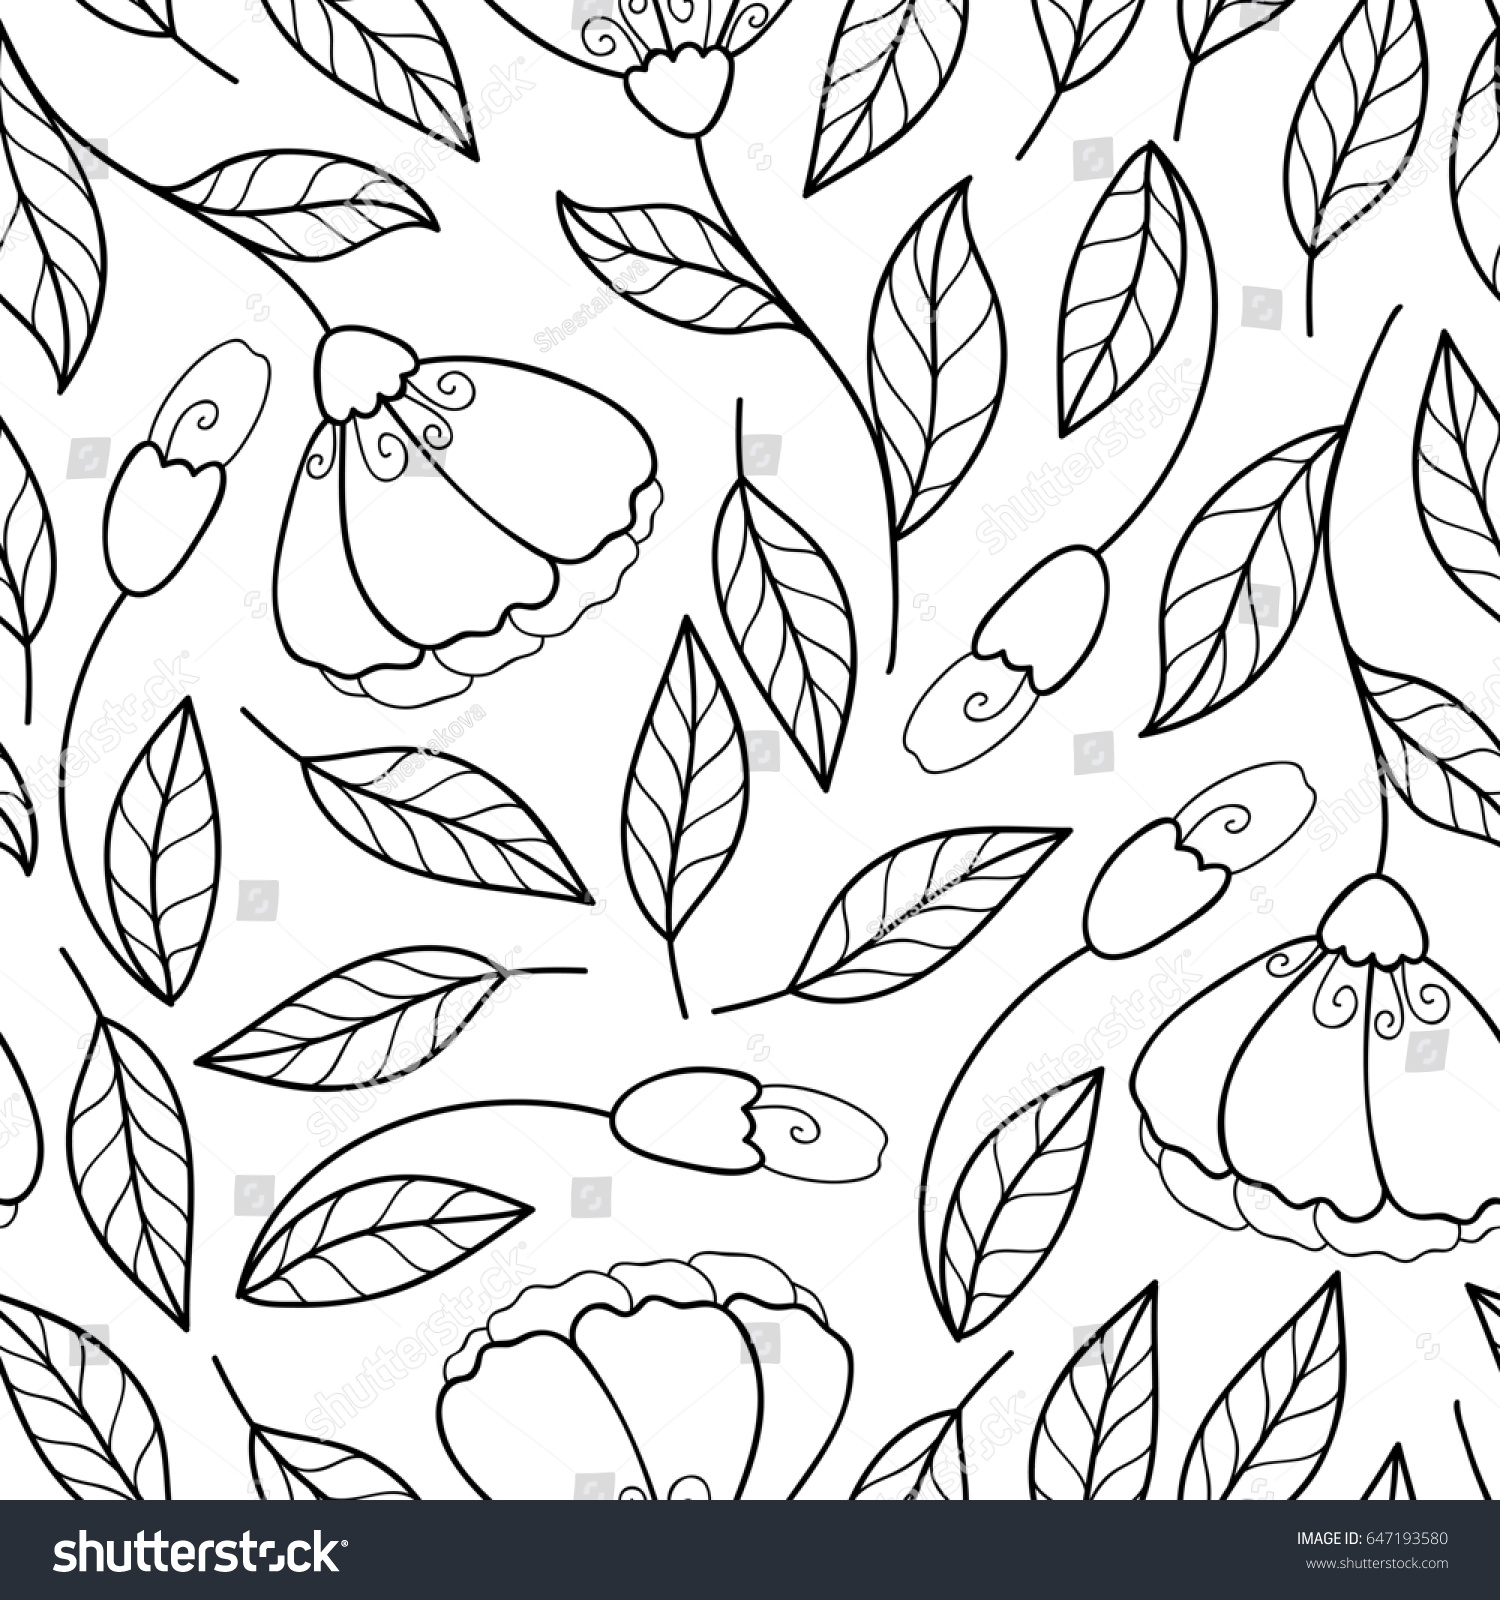 Flower Monochrome Seamless Pattern Black And White Floral Print